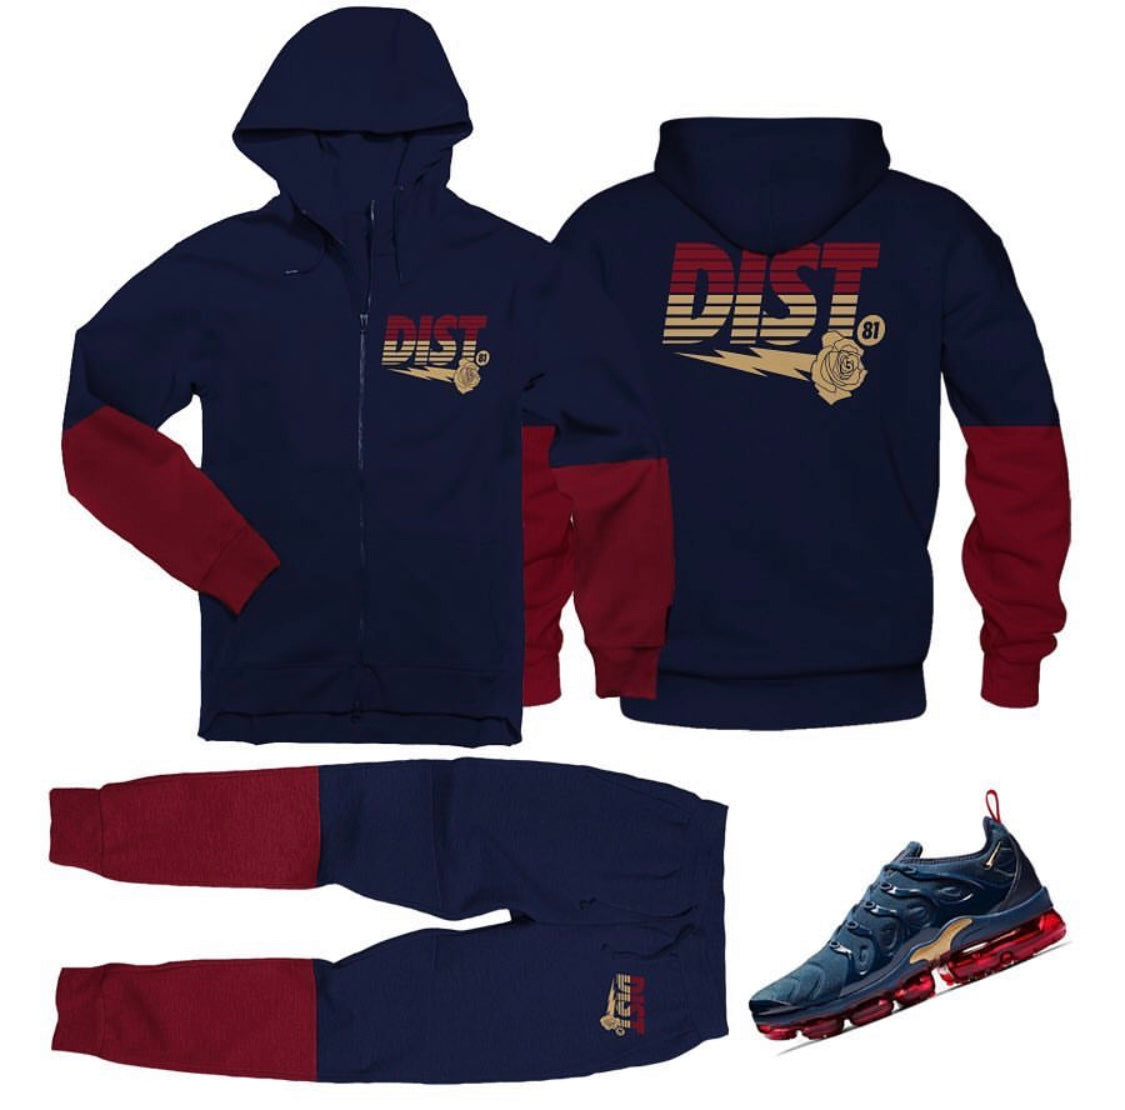 DISTRICT 81 Max Plus Zip Up Jogging Suit (Navy)